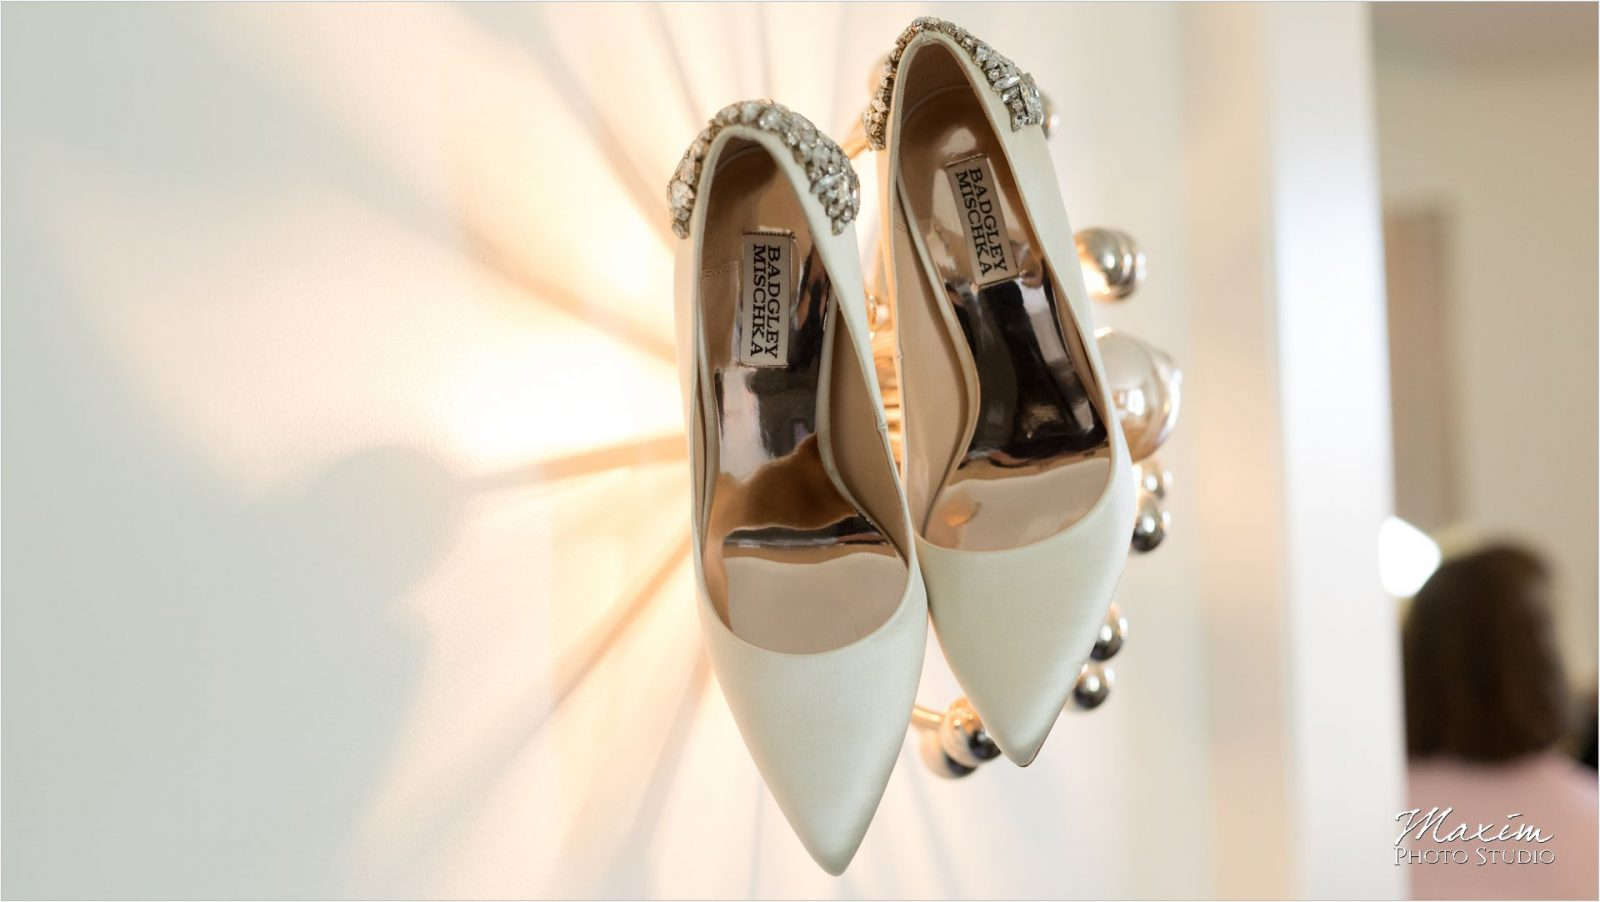 21C Museum Hotel Wedding shoes Badgley Mischka